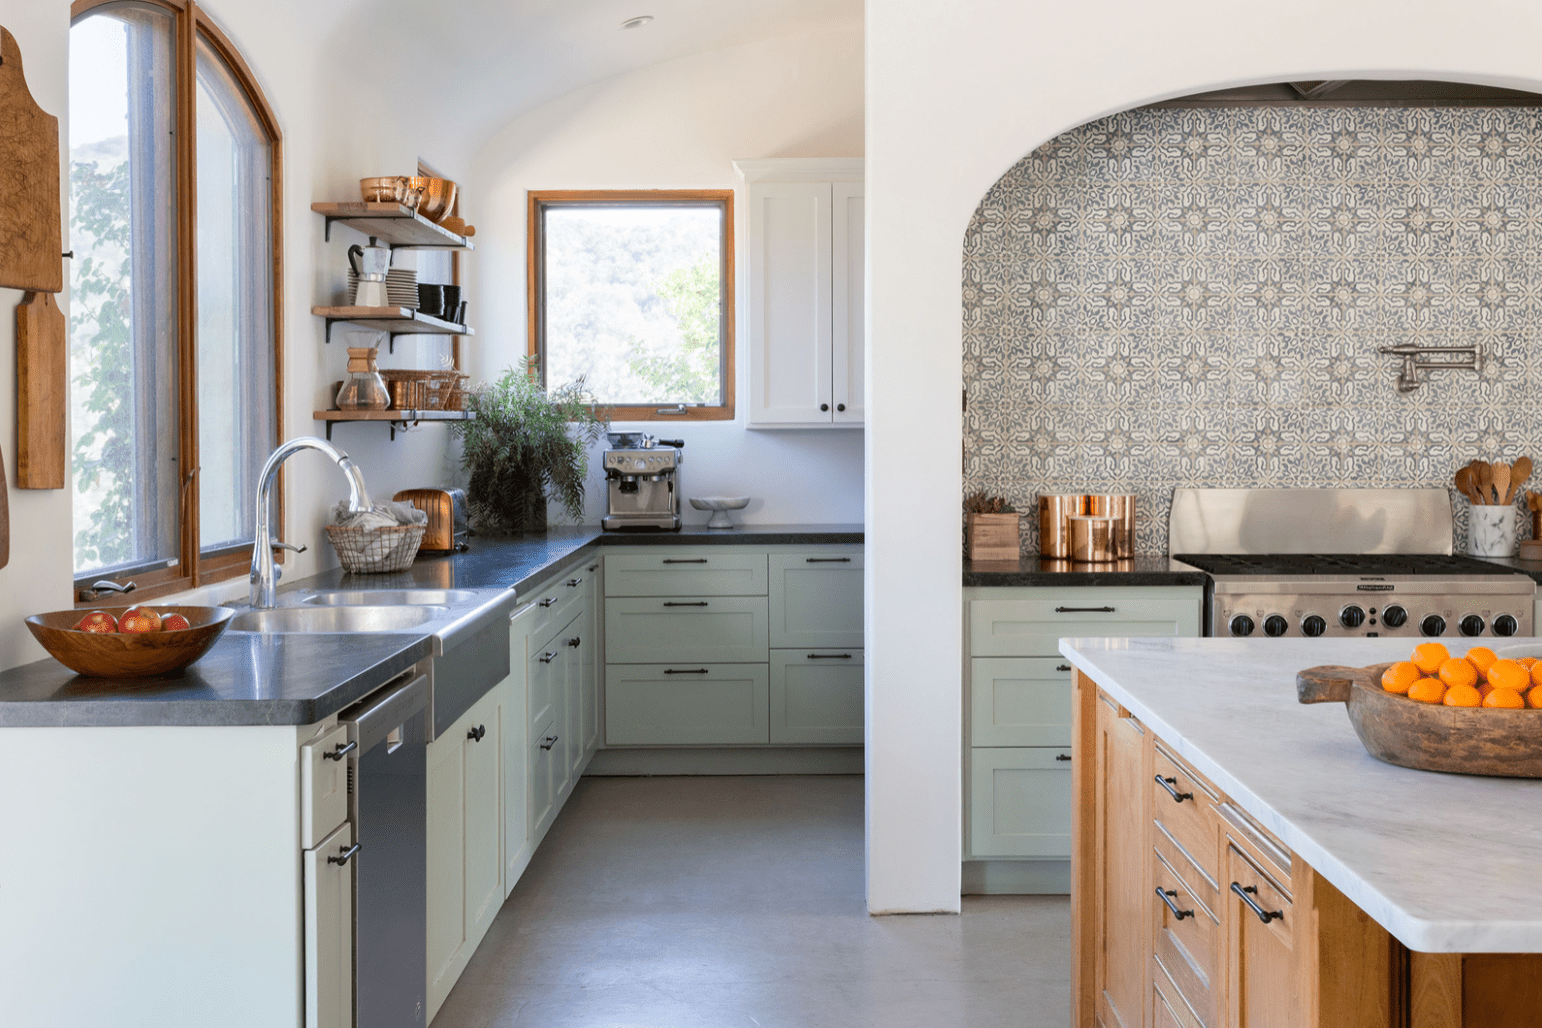 A kitchen with mint green cabinets and a boldly tiled backsplash